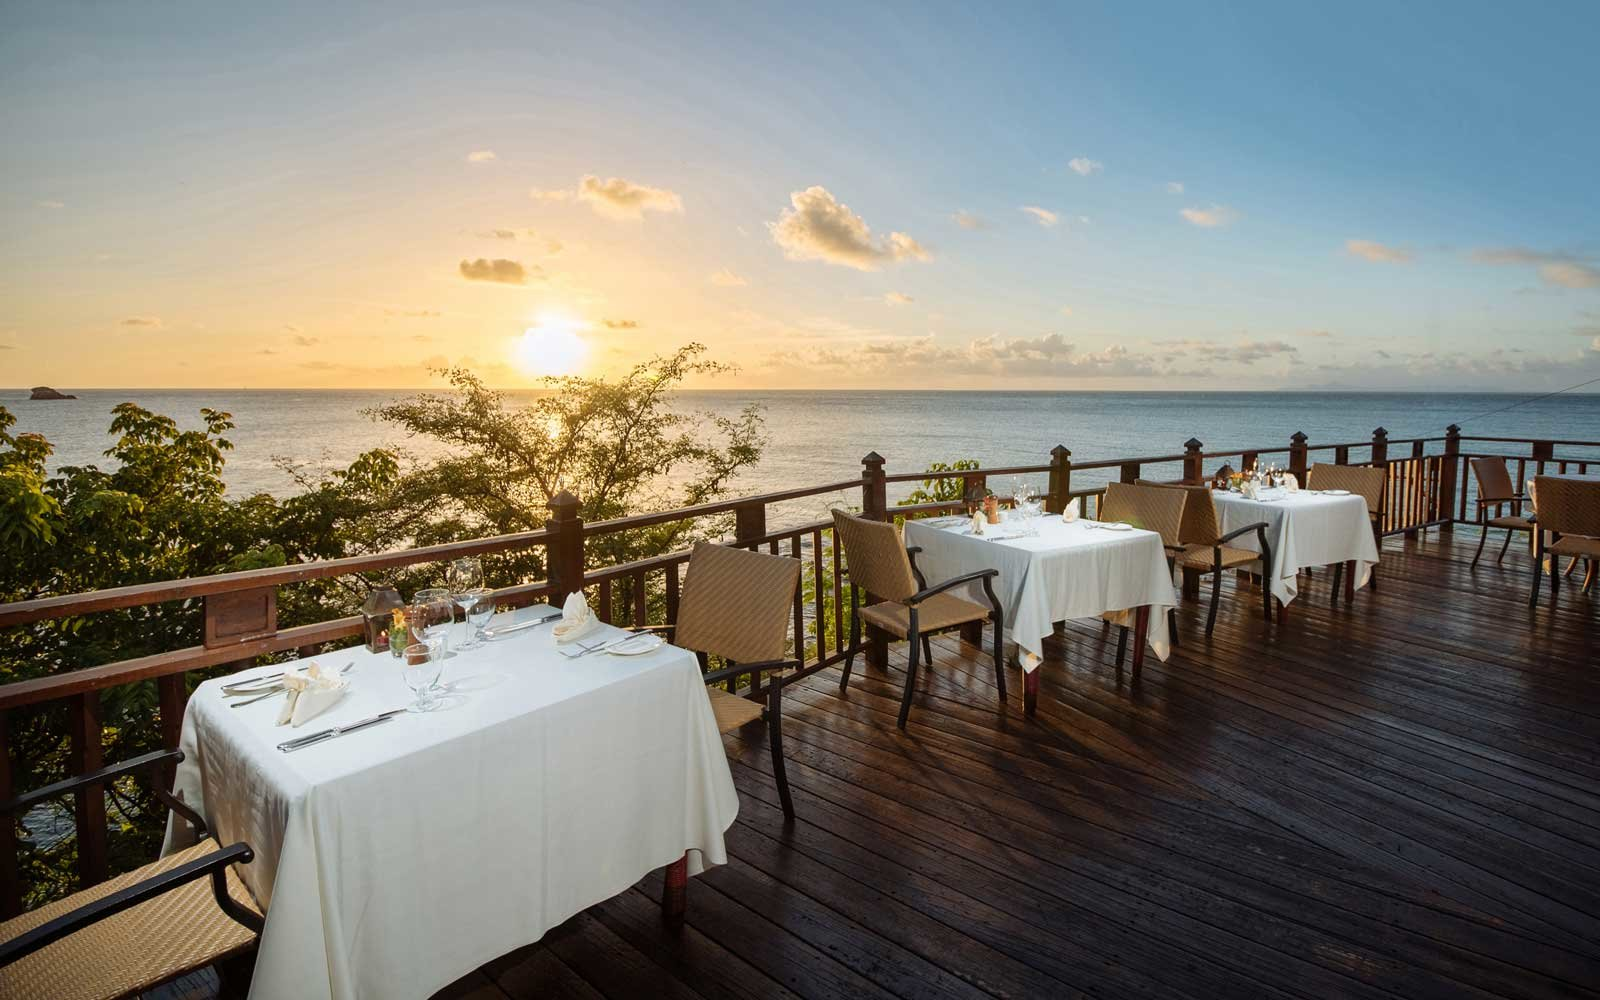 Top Romantic Hotels: Cap Maison, St Lucia